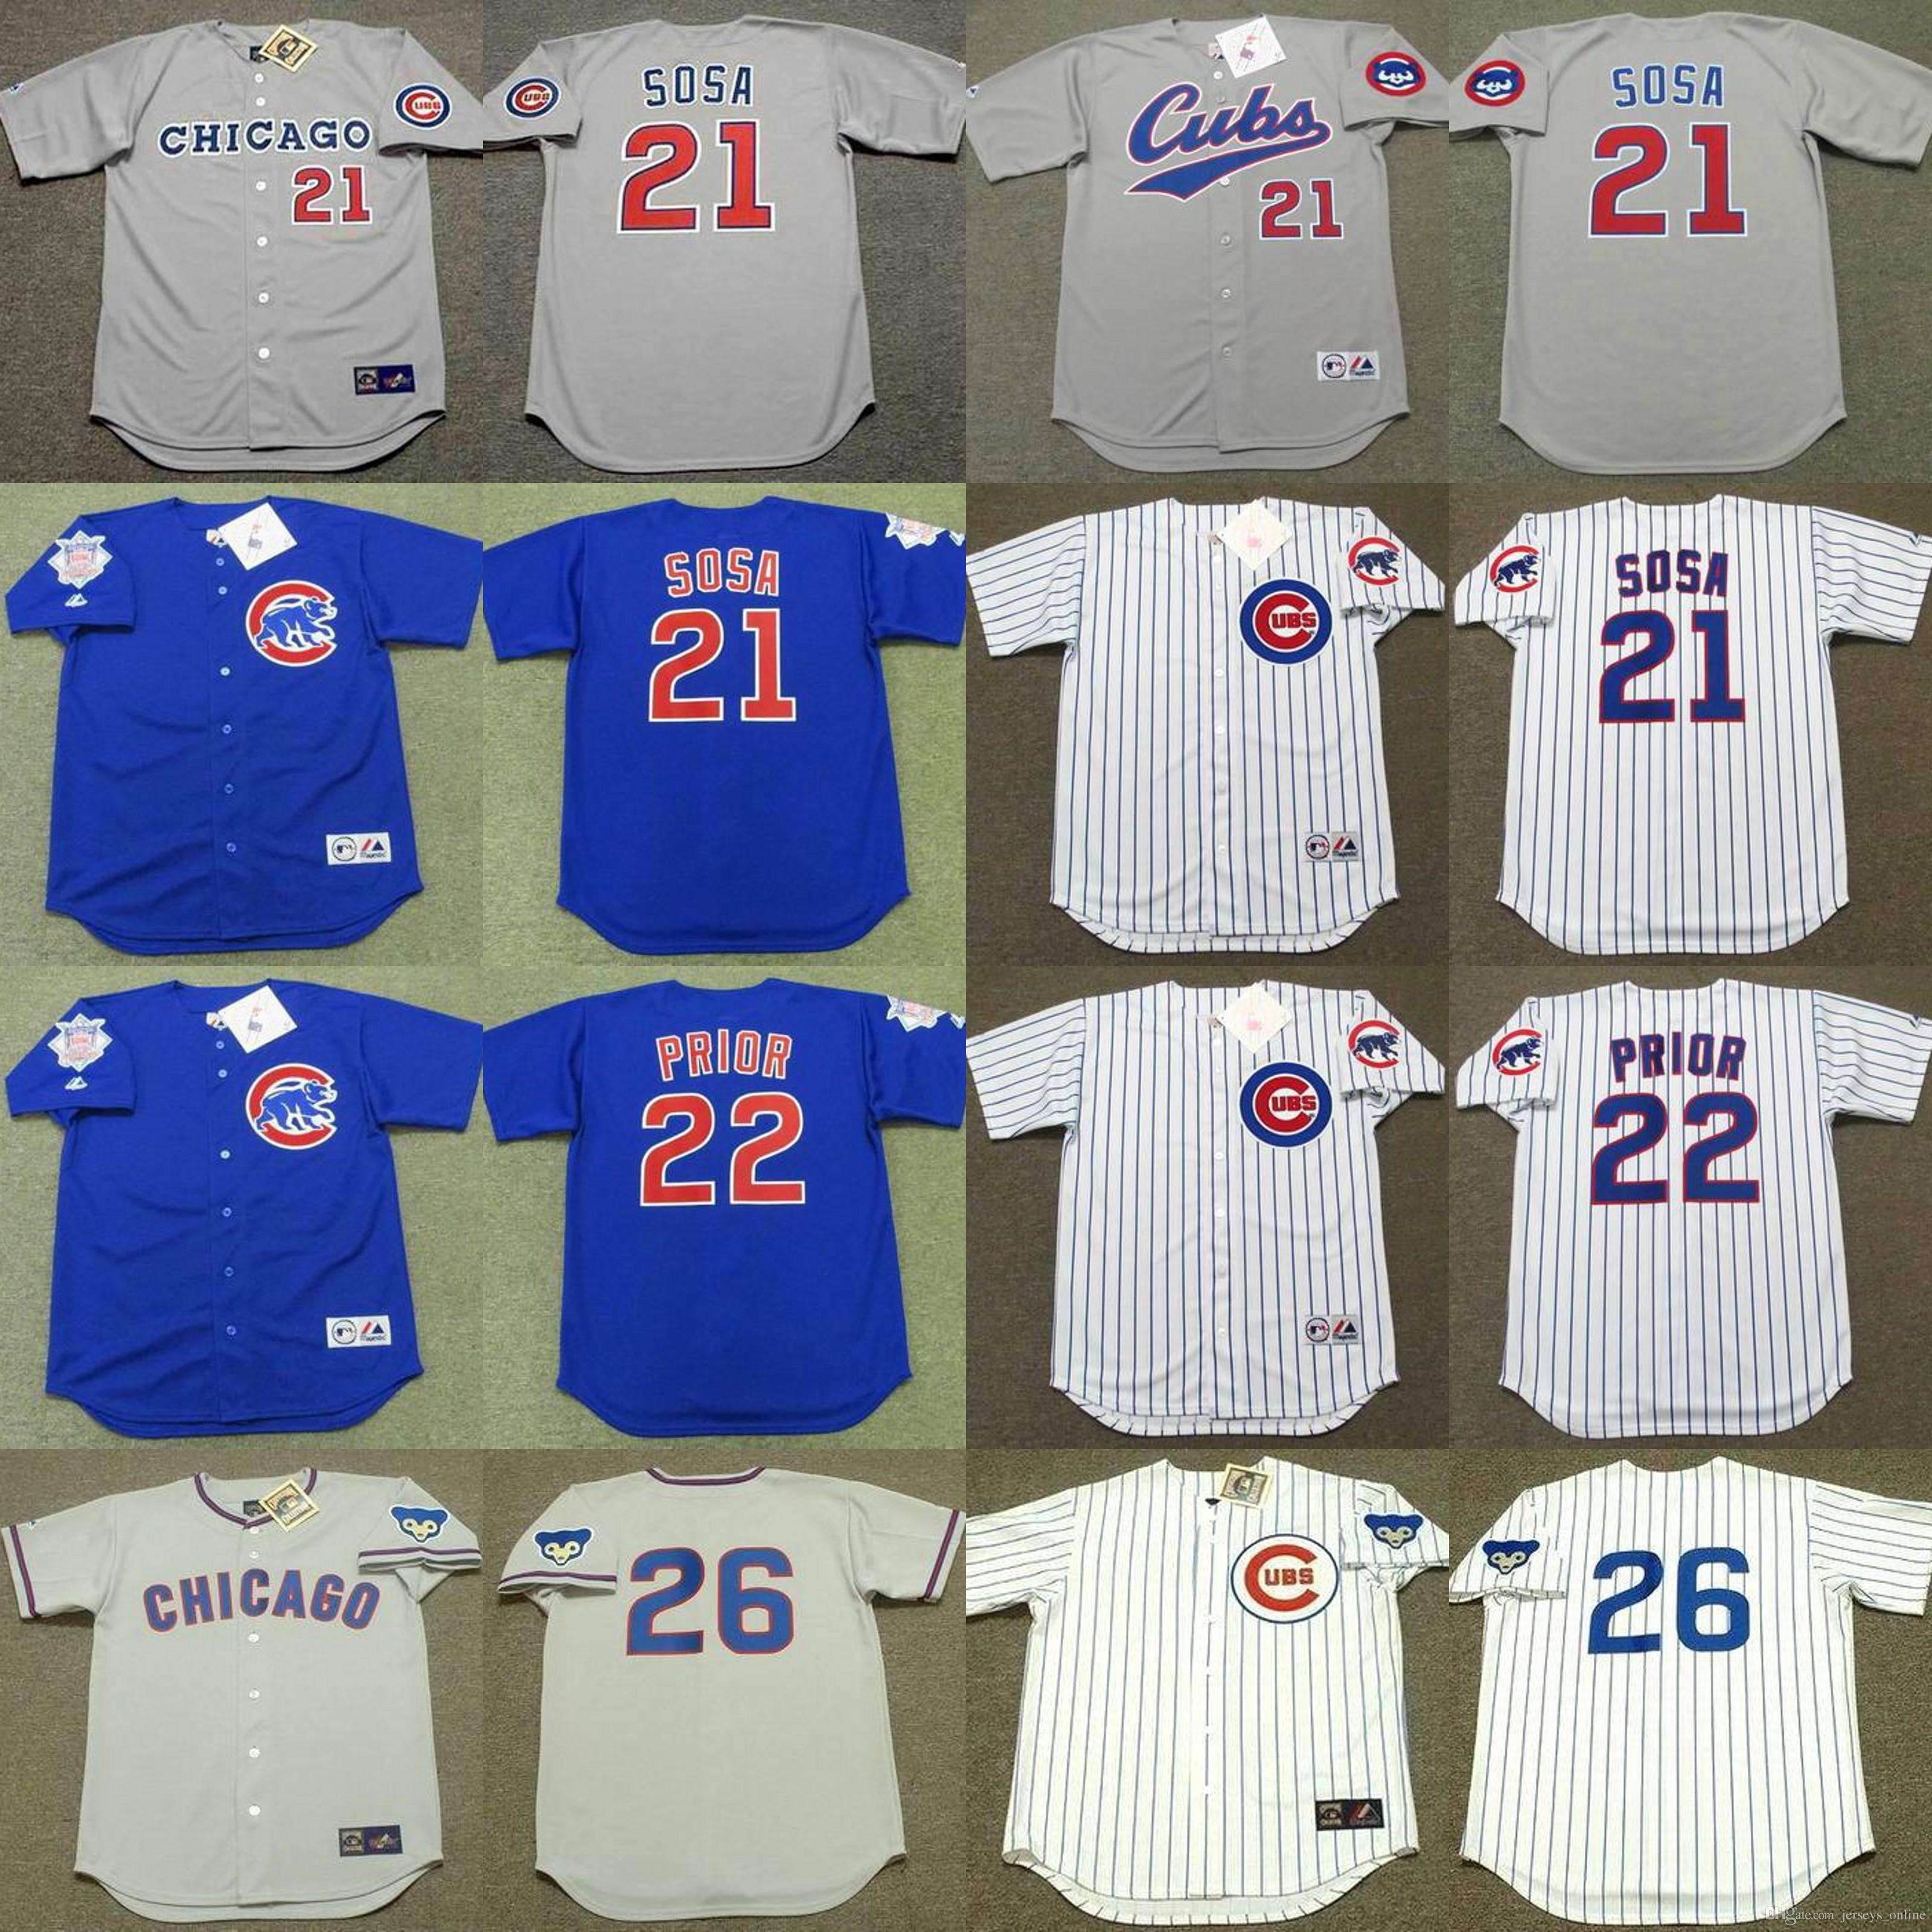 Chicago 10 DAVE KINGMAN 26 BILLY WILLIAMS 21 Sammy Sosa 31 Ferguson Jenkins 22 MARK jérsei de basebol ANTES costurado